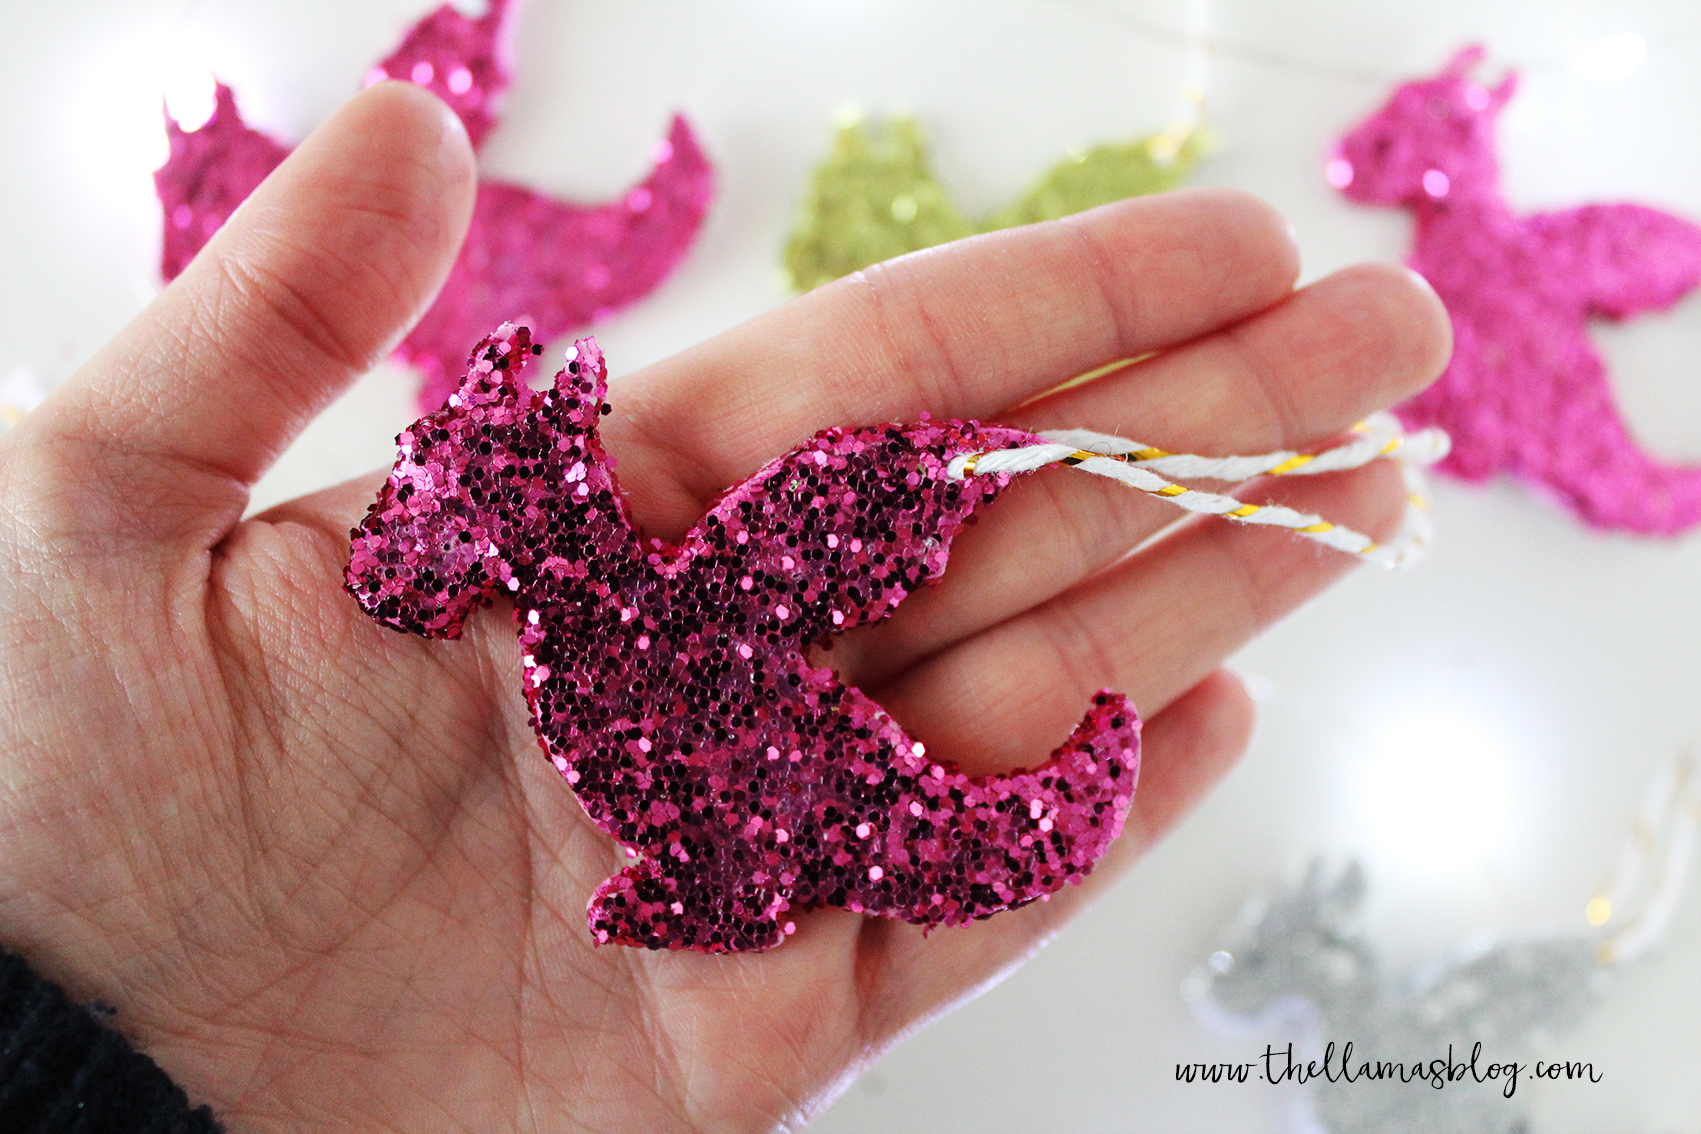 thellamas_DIY_sparkling_dragon_decorations_hand2_the_llamas_blog